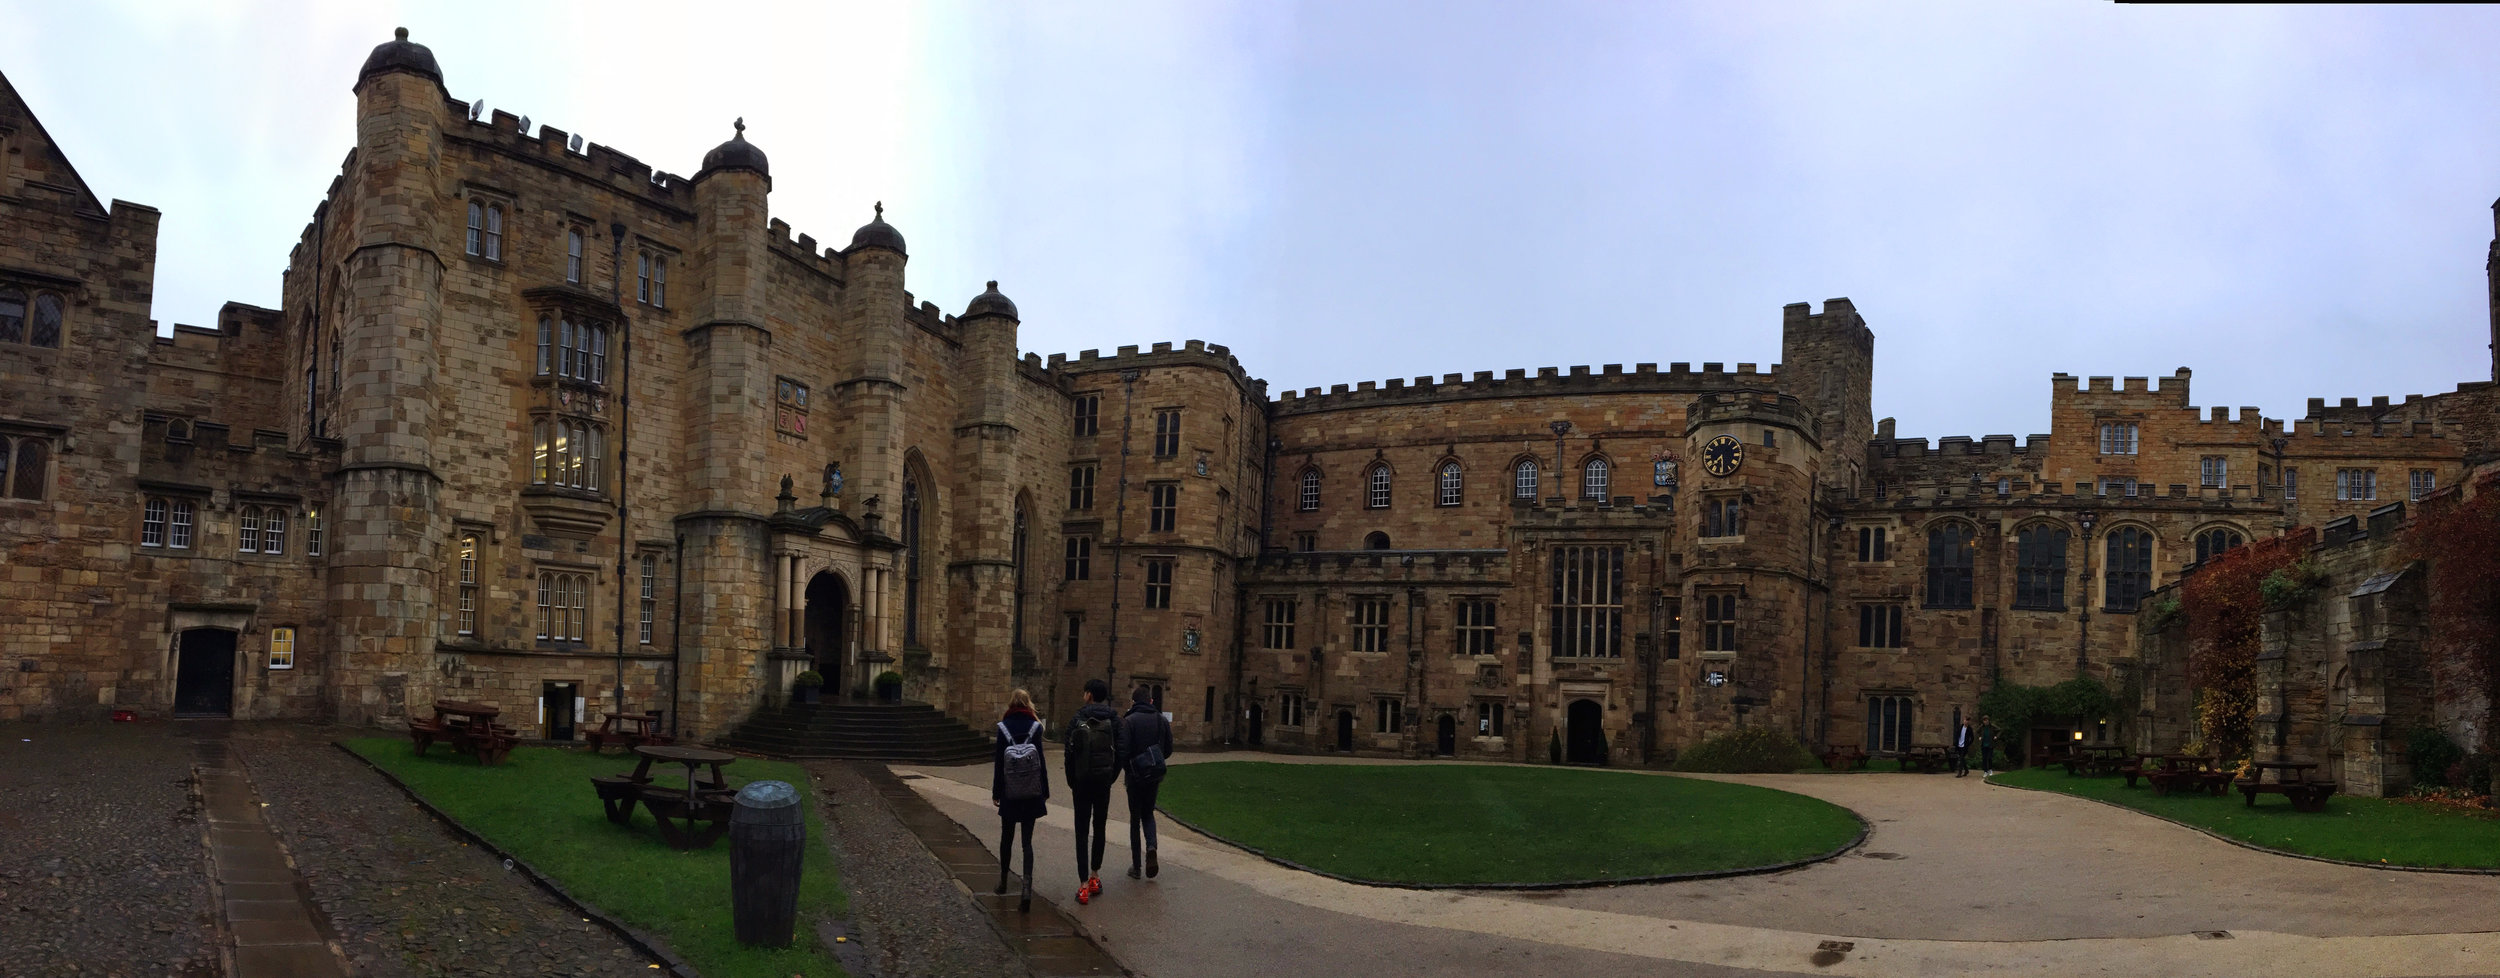 Durham Castle & some university students